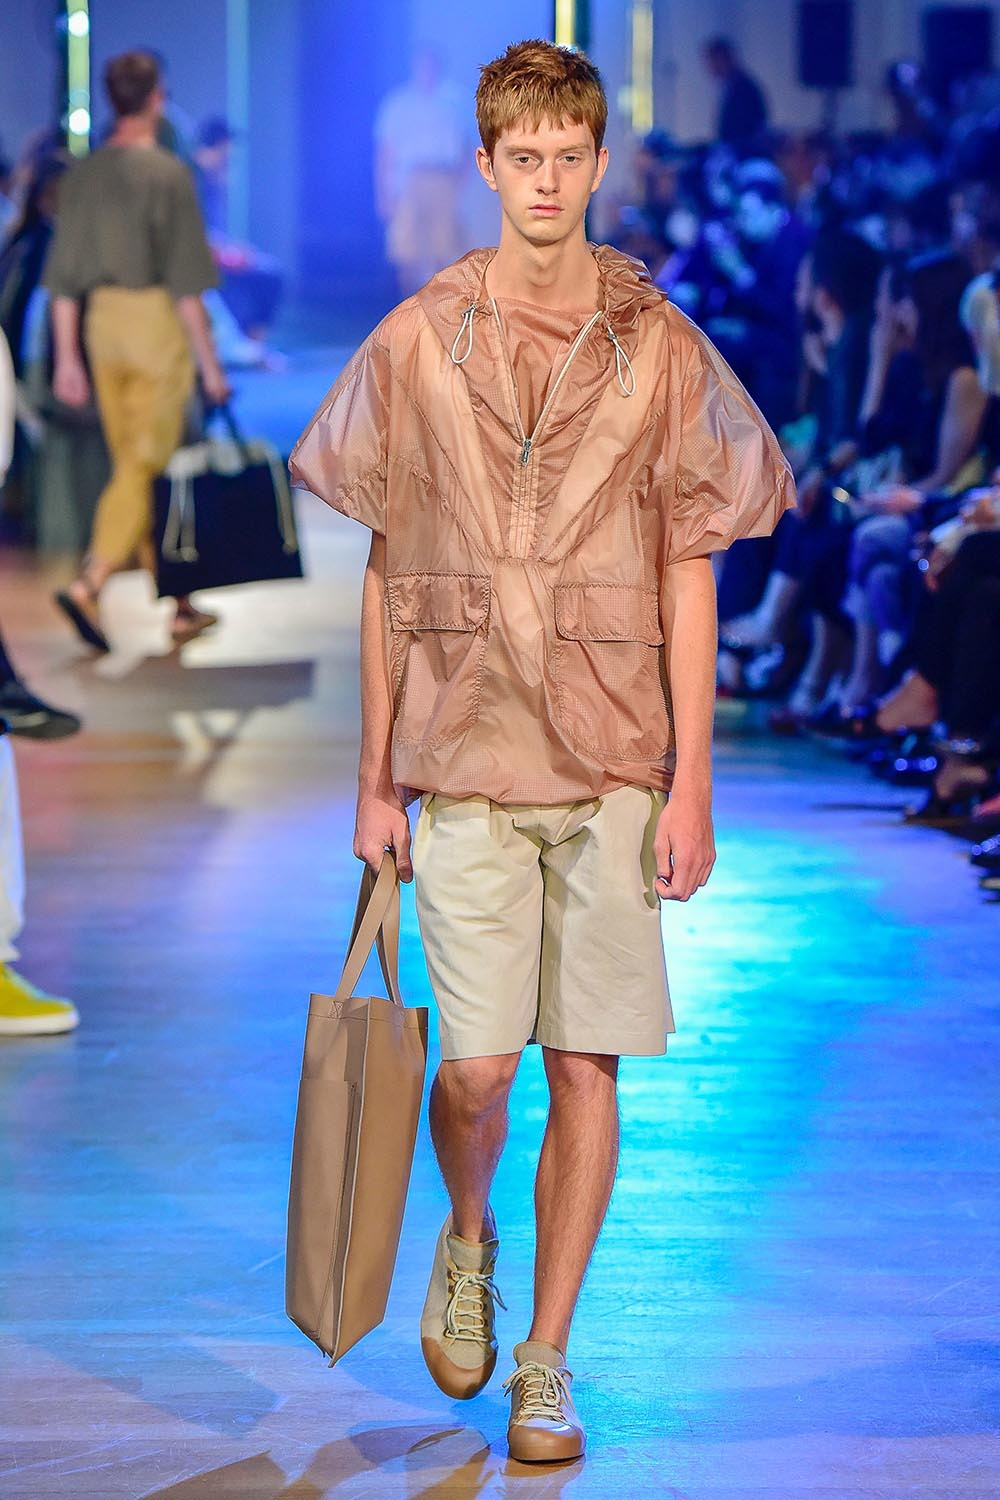 Cerruti 1881 Paris Fashion Week Men's SS19 - Sagaboi - Look 12